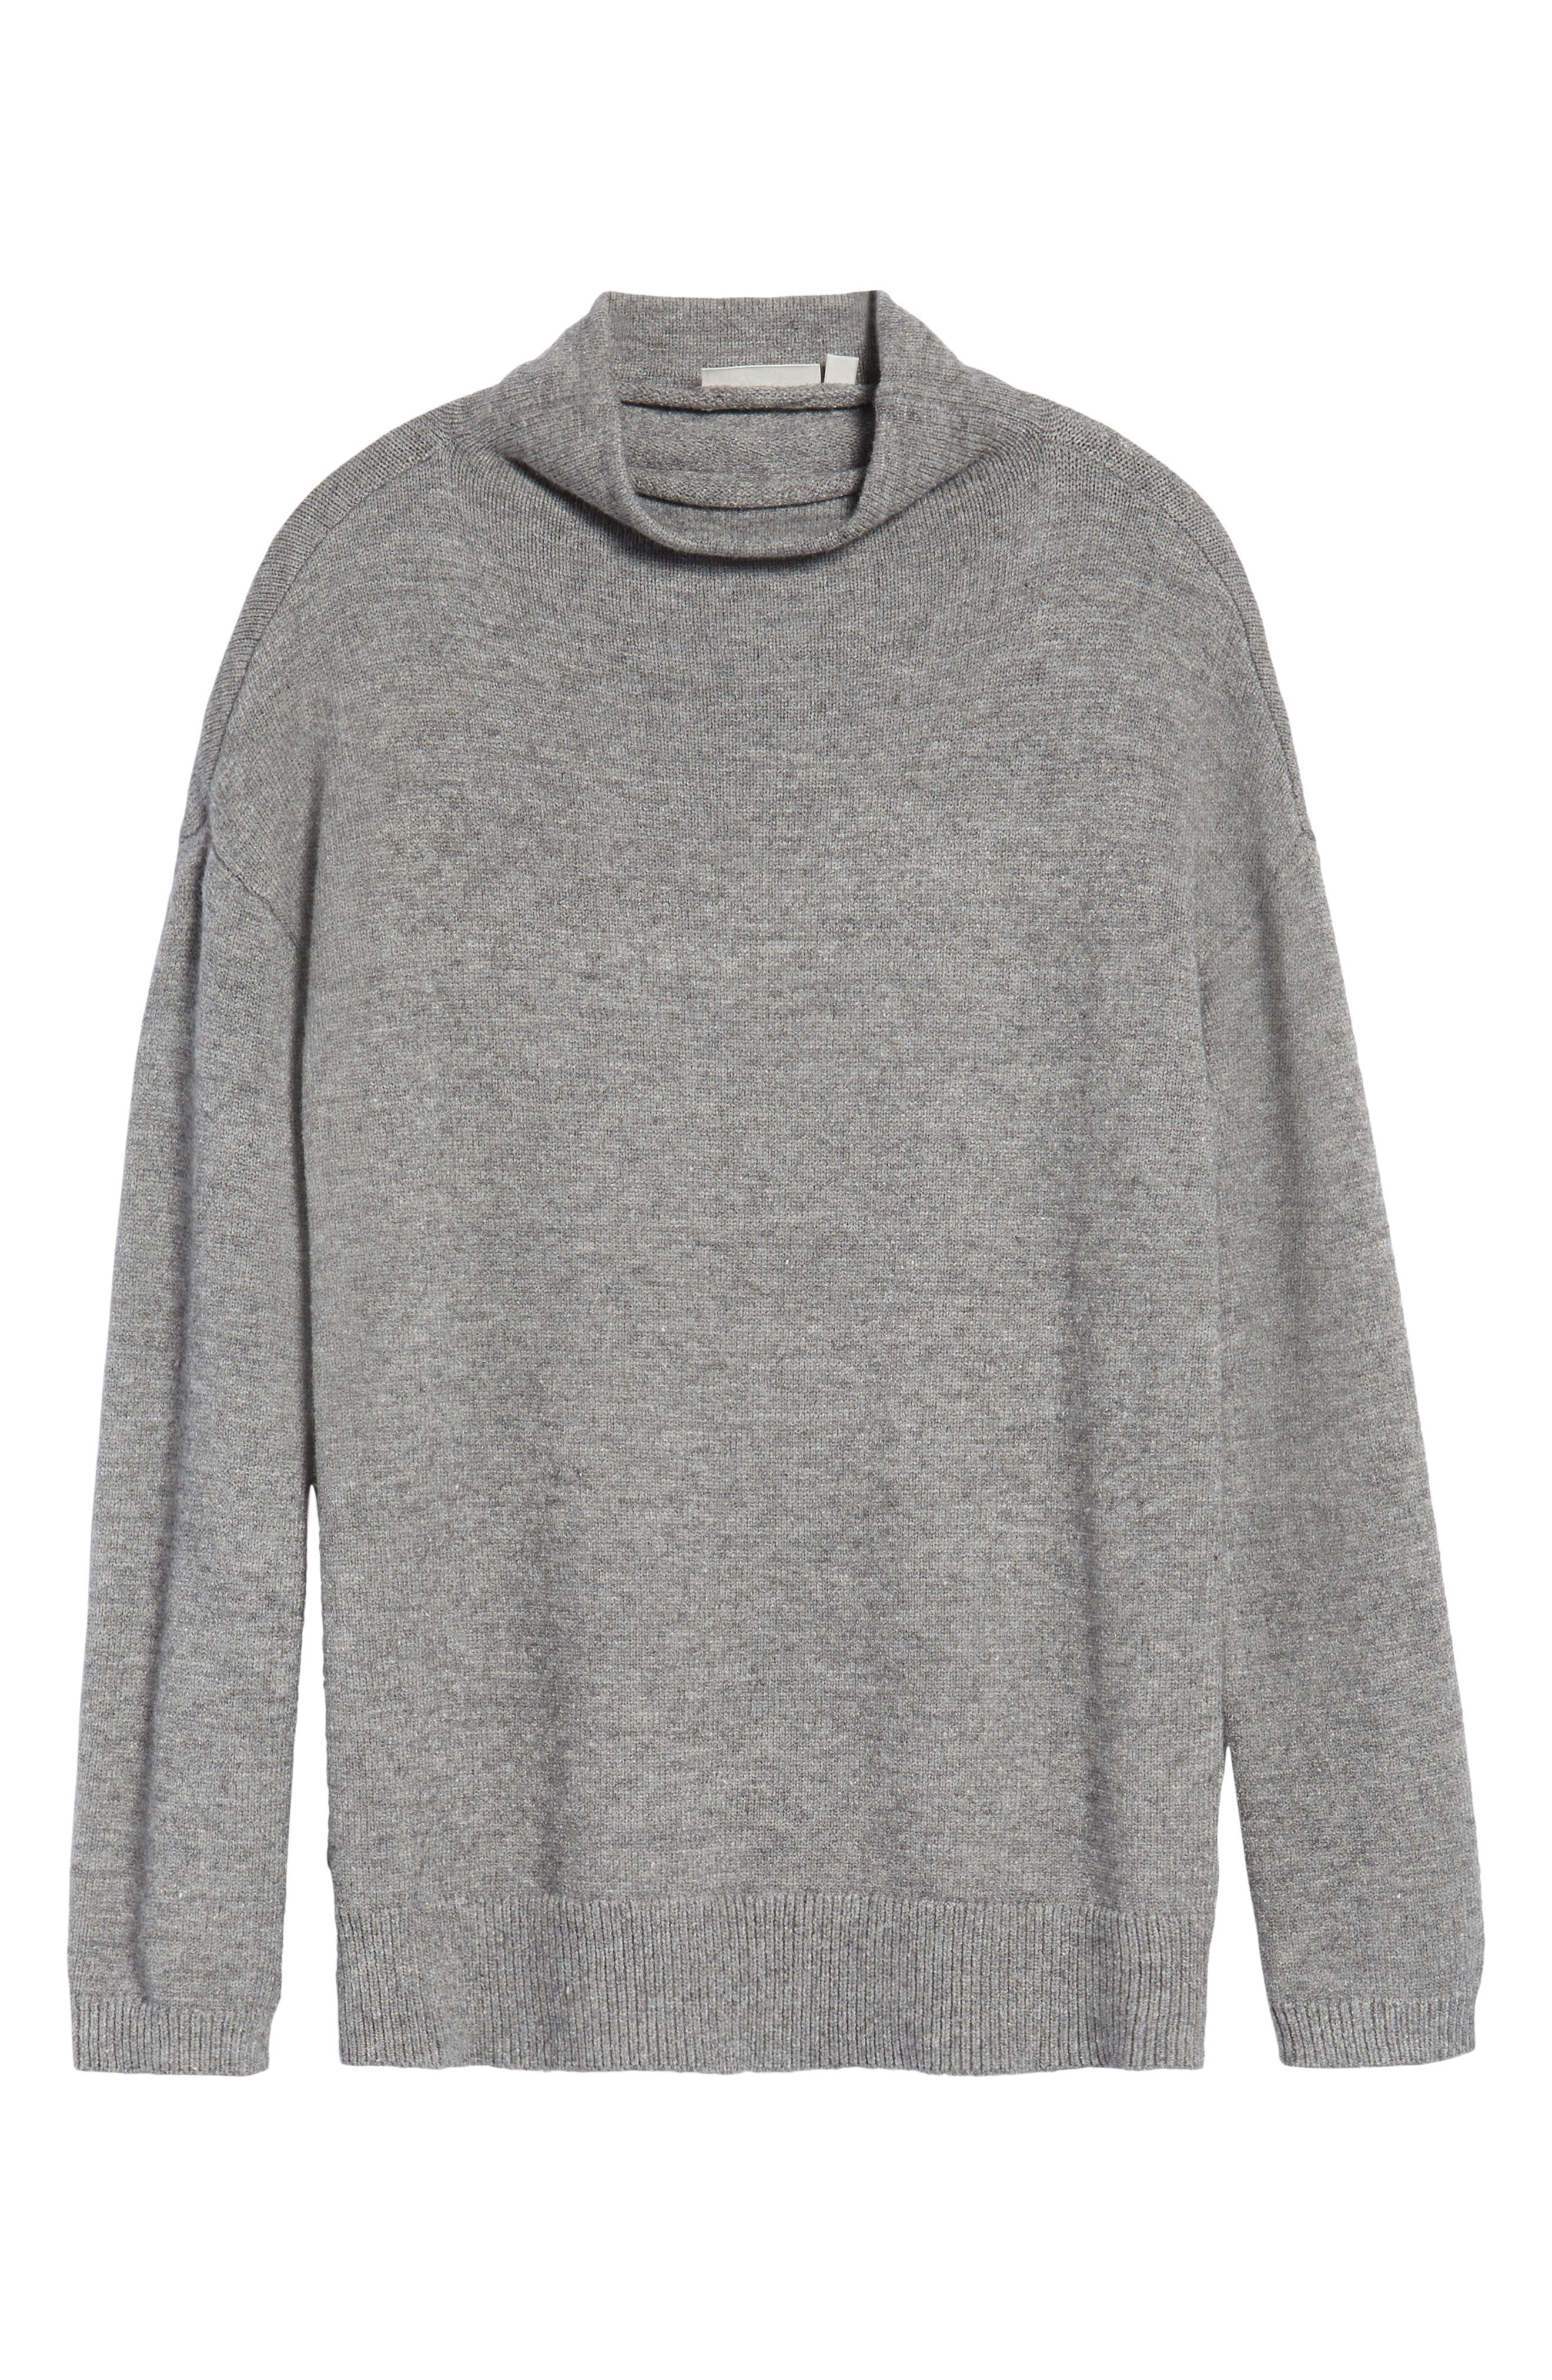 RD Style Funnel Neck Sweater,                             Alternate thumbnail 6, color,                             030